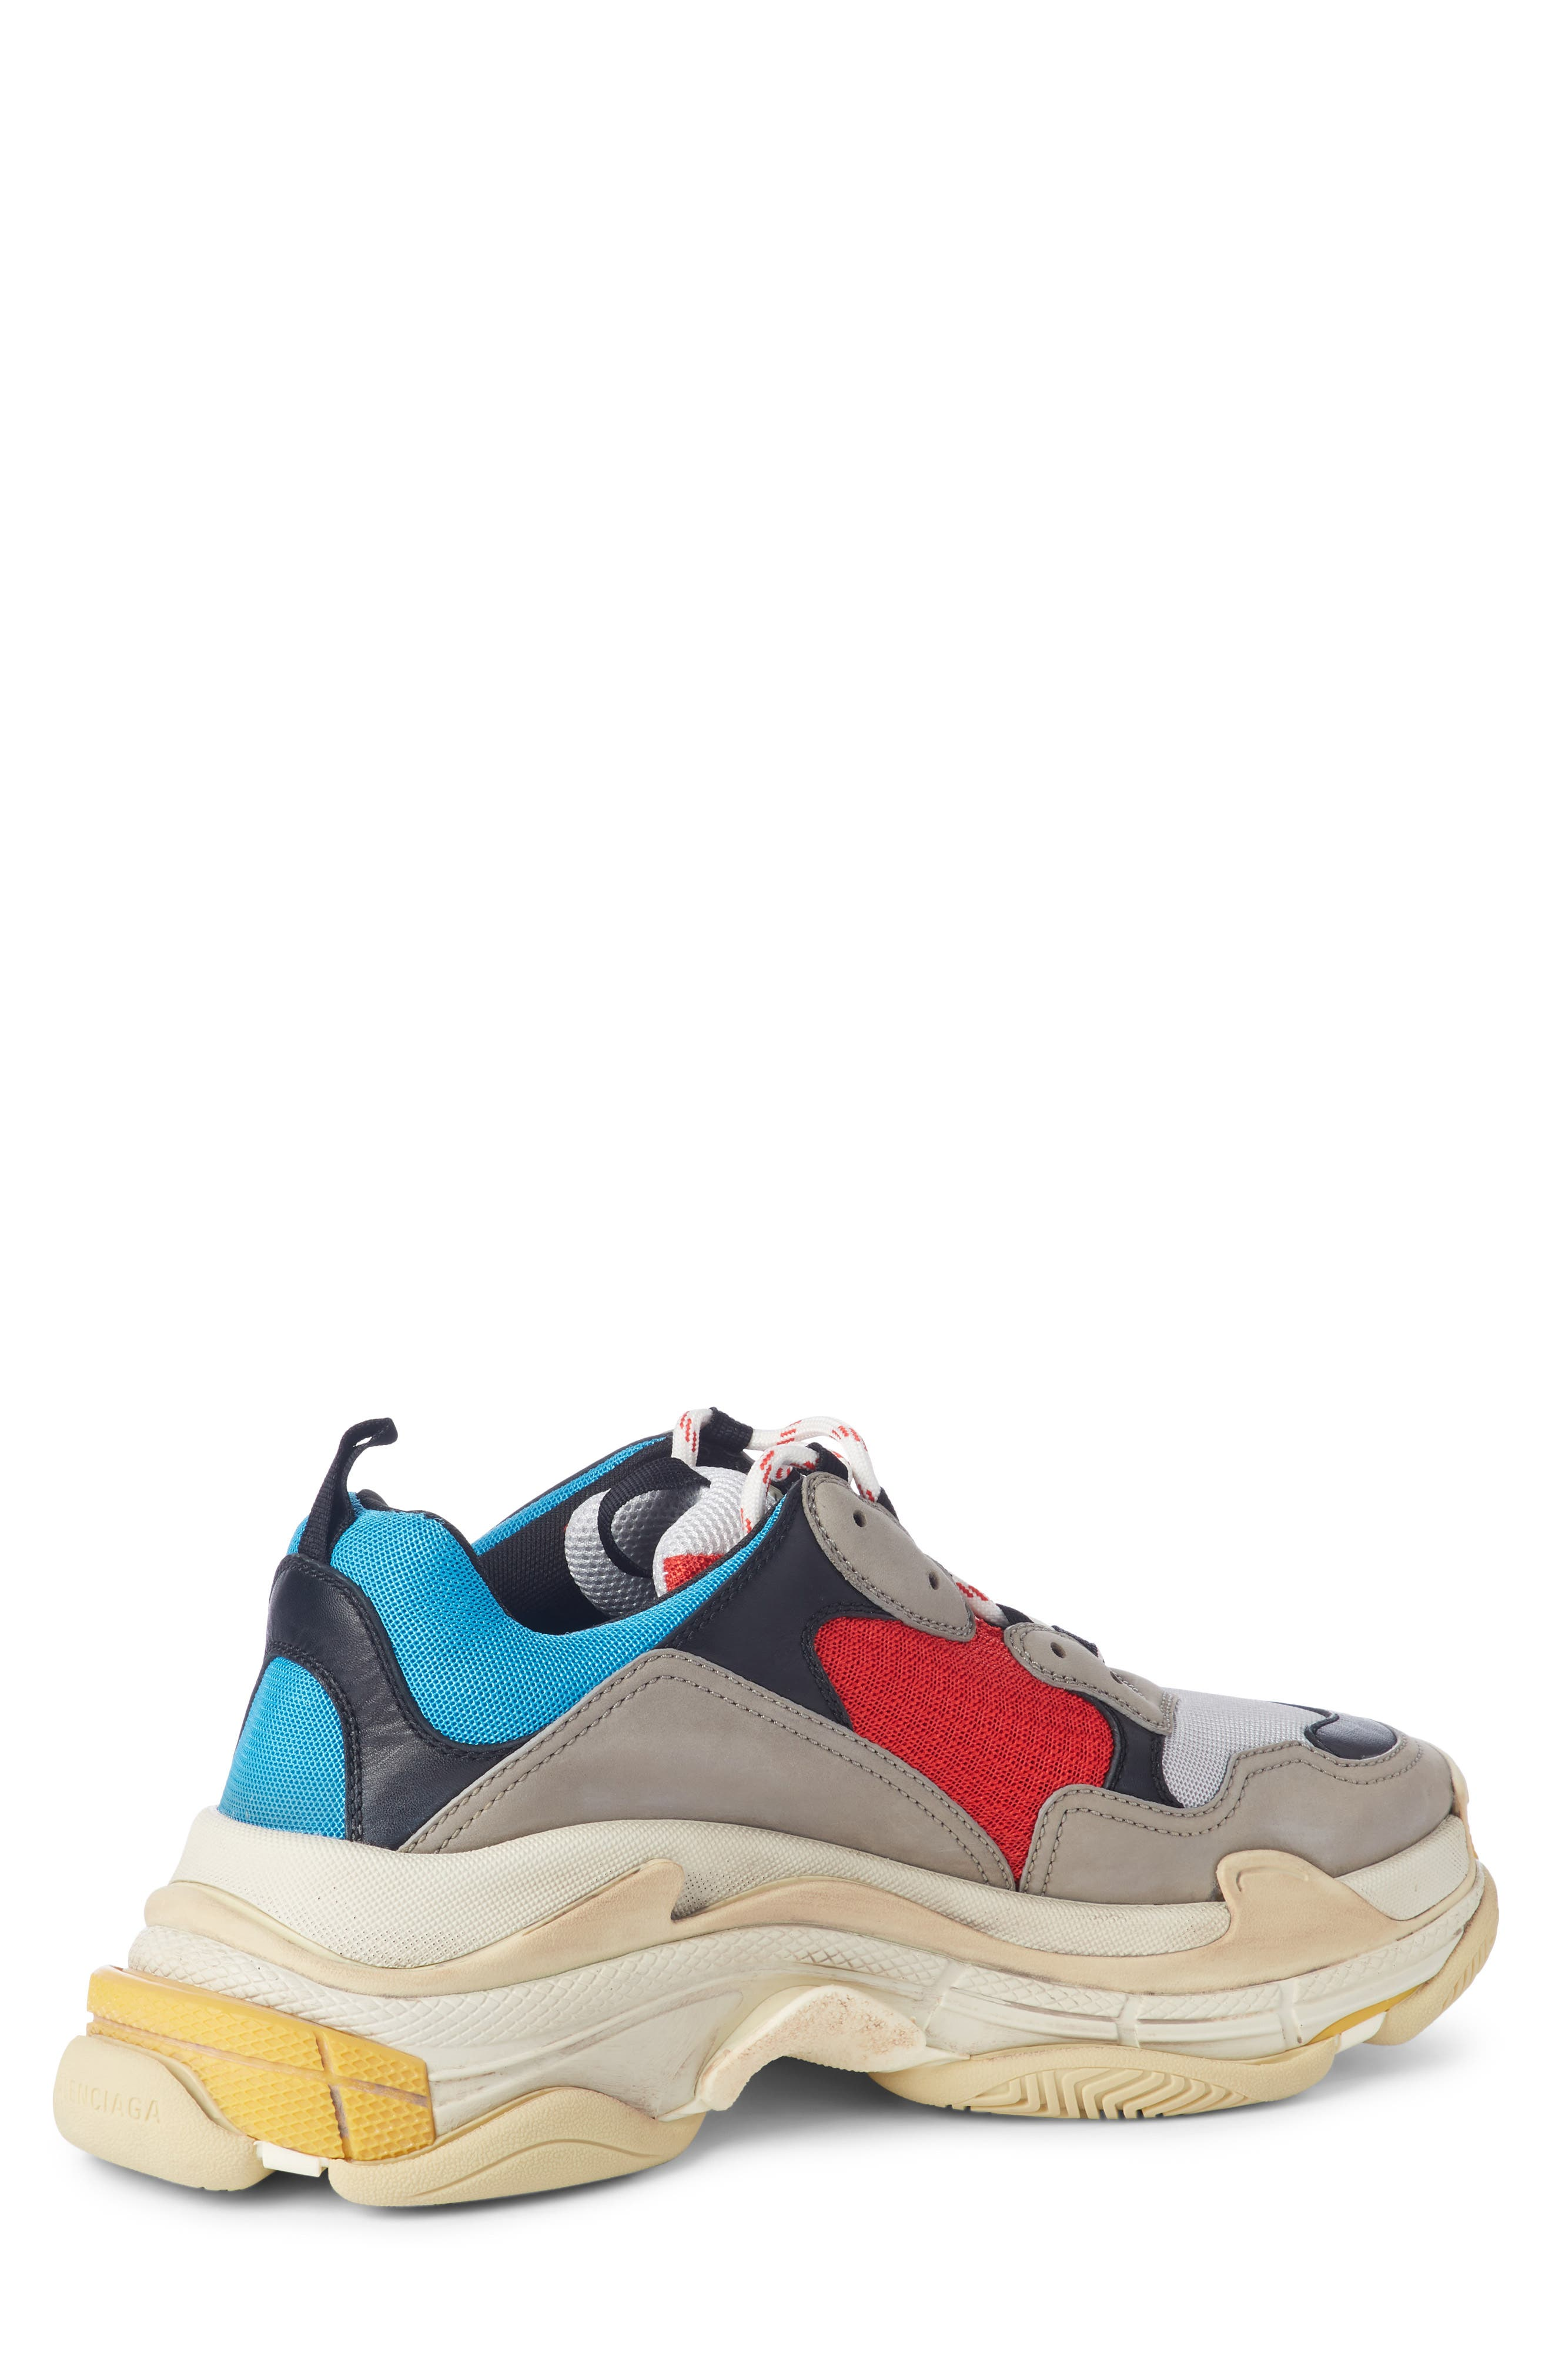 Triple S Retro Sneaker,                             Alternate thumbnail 2, color,                             Beige